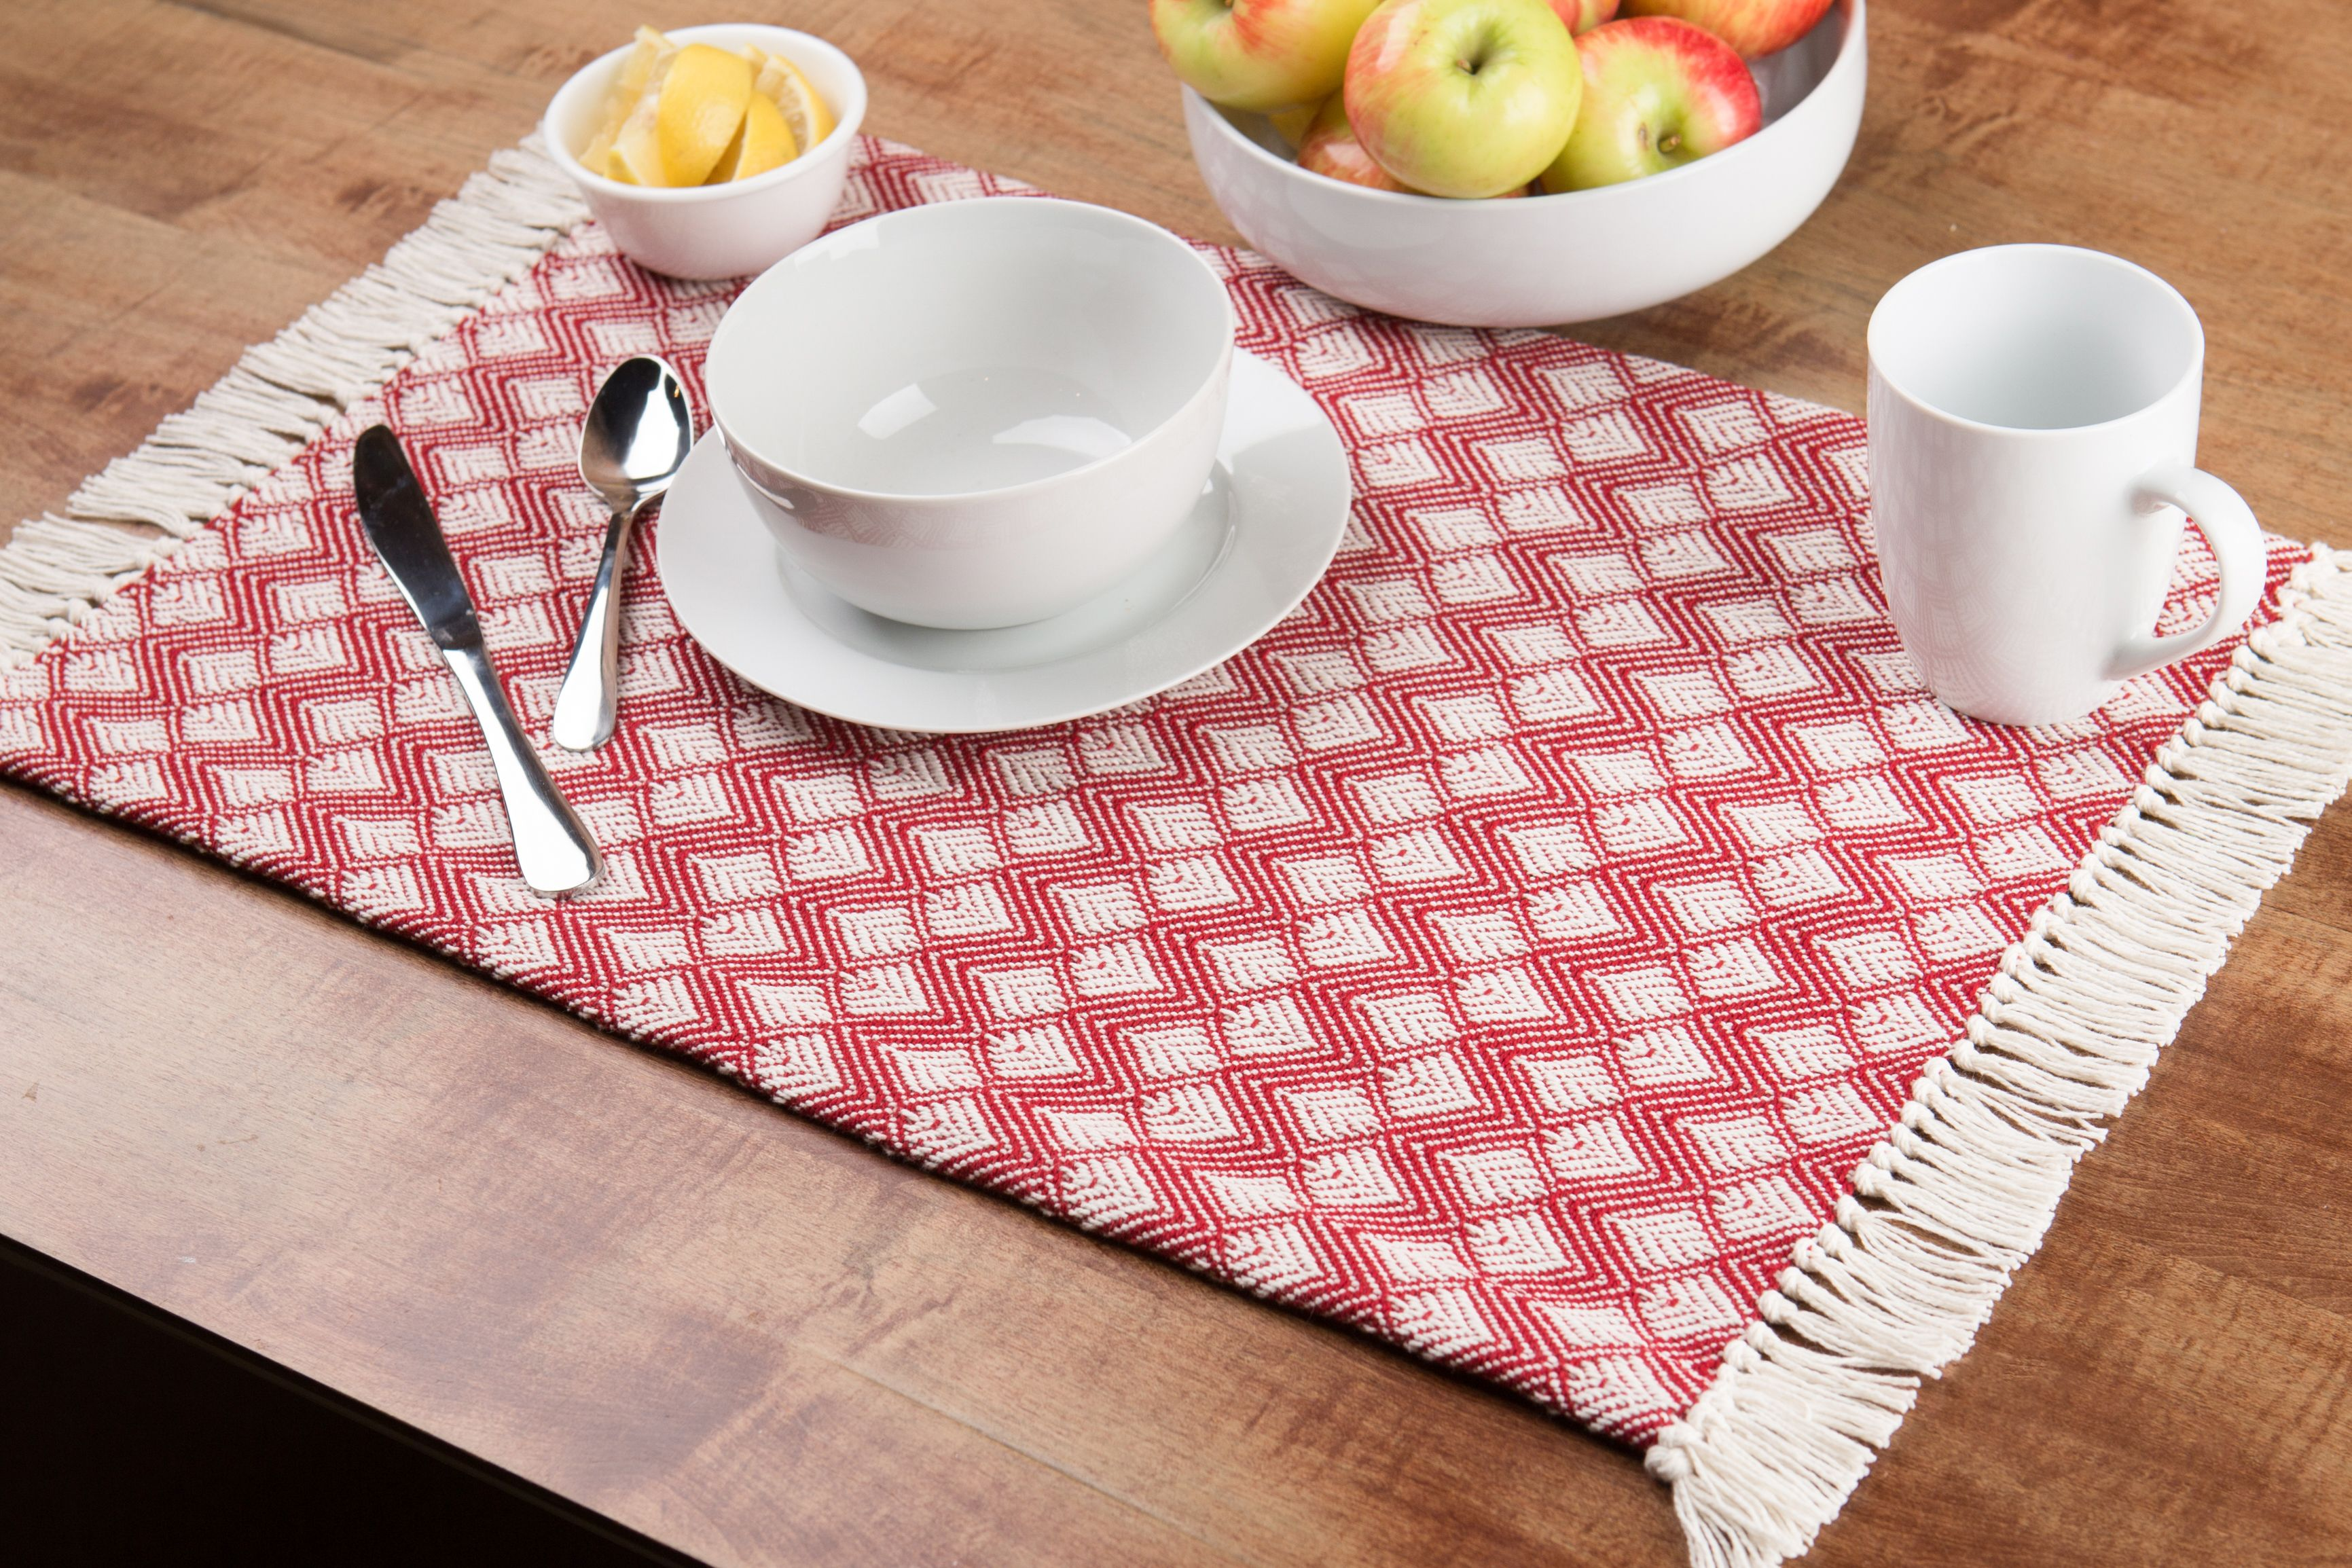 Set of 4 Fashion Placemats Durable Chef// Baker Pattern Ease Care Wipe Clean Foam Backing Table Place Mat Set 12 X 18 Better Home